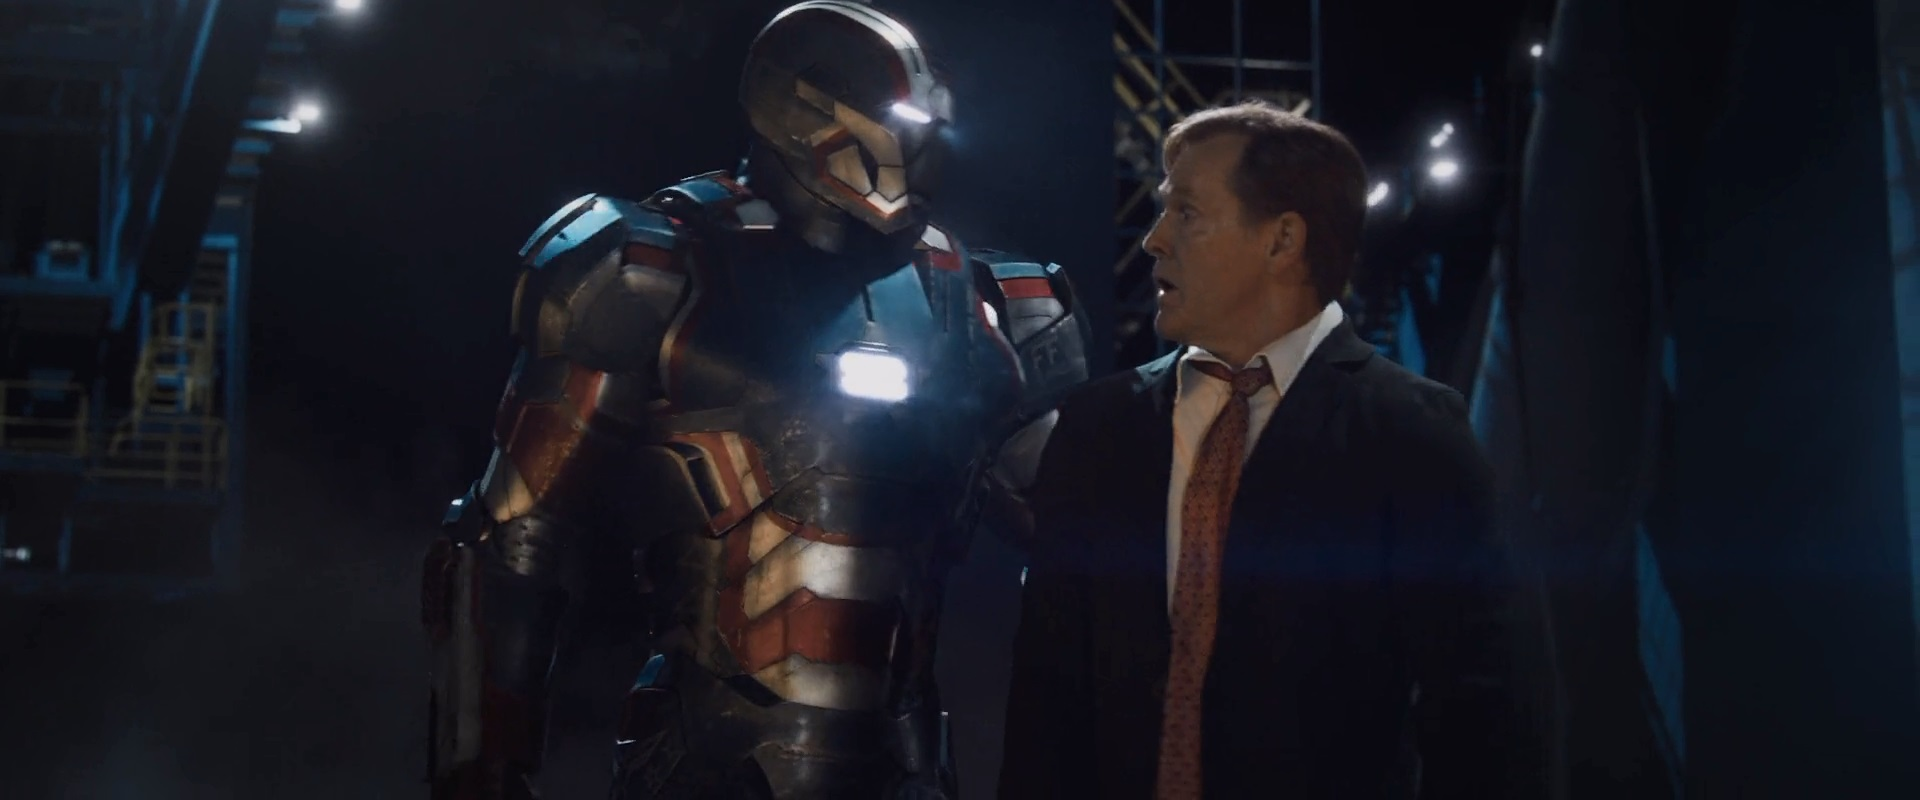 President Ellis in Iron Man 3